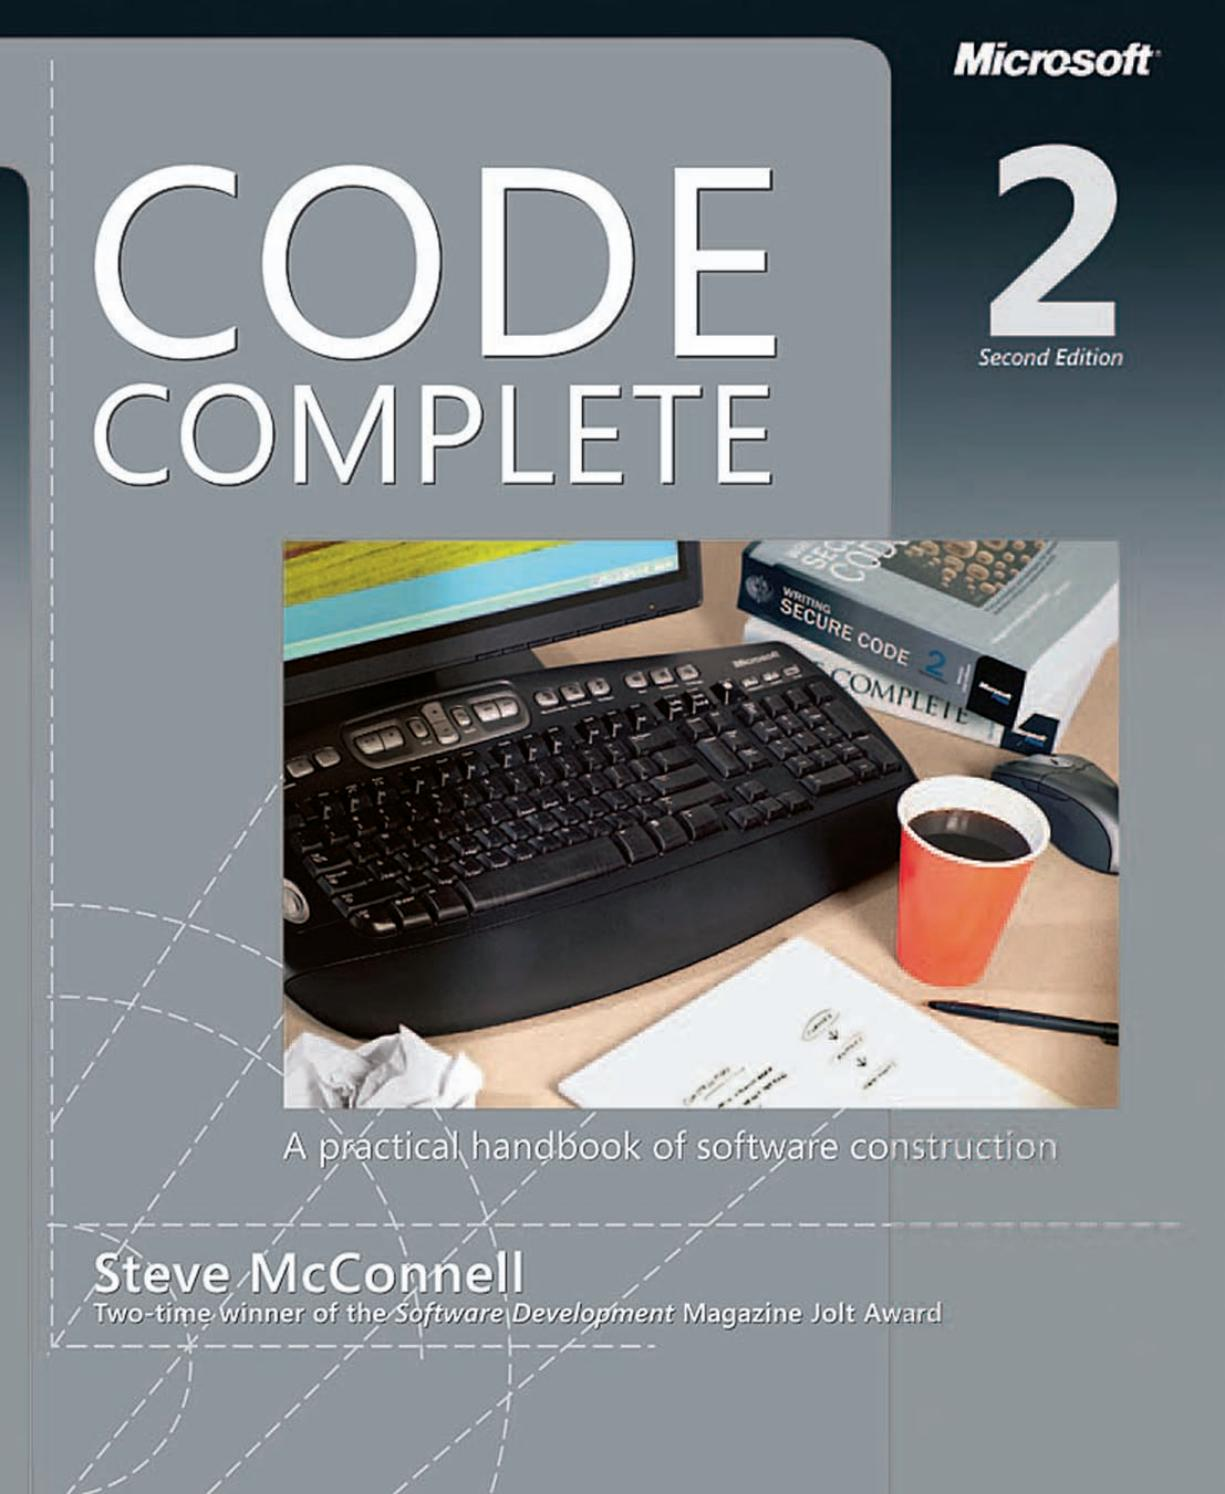 Code complete second edition ebook prt1